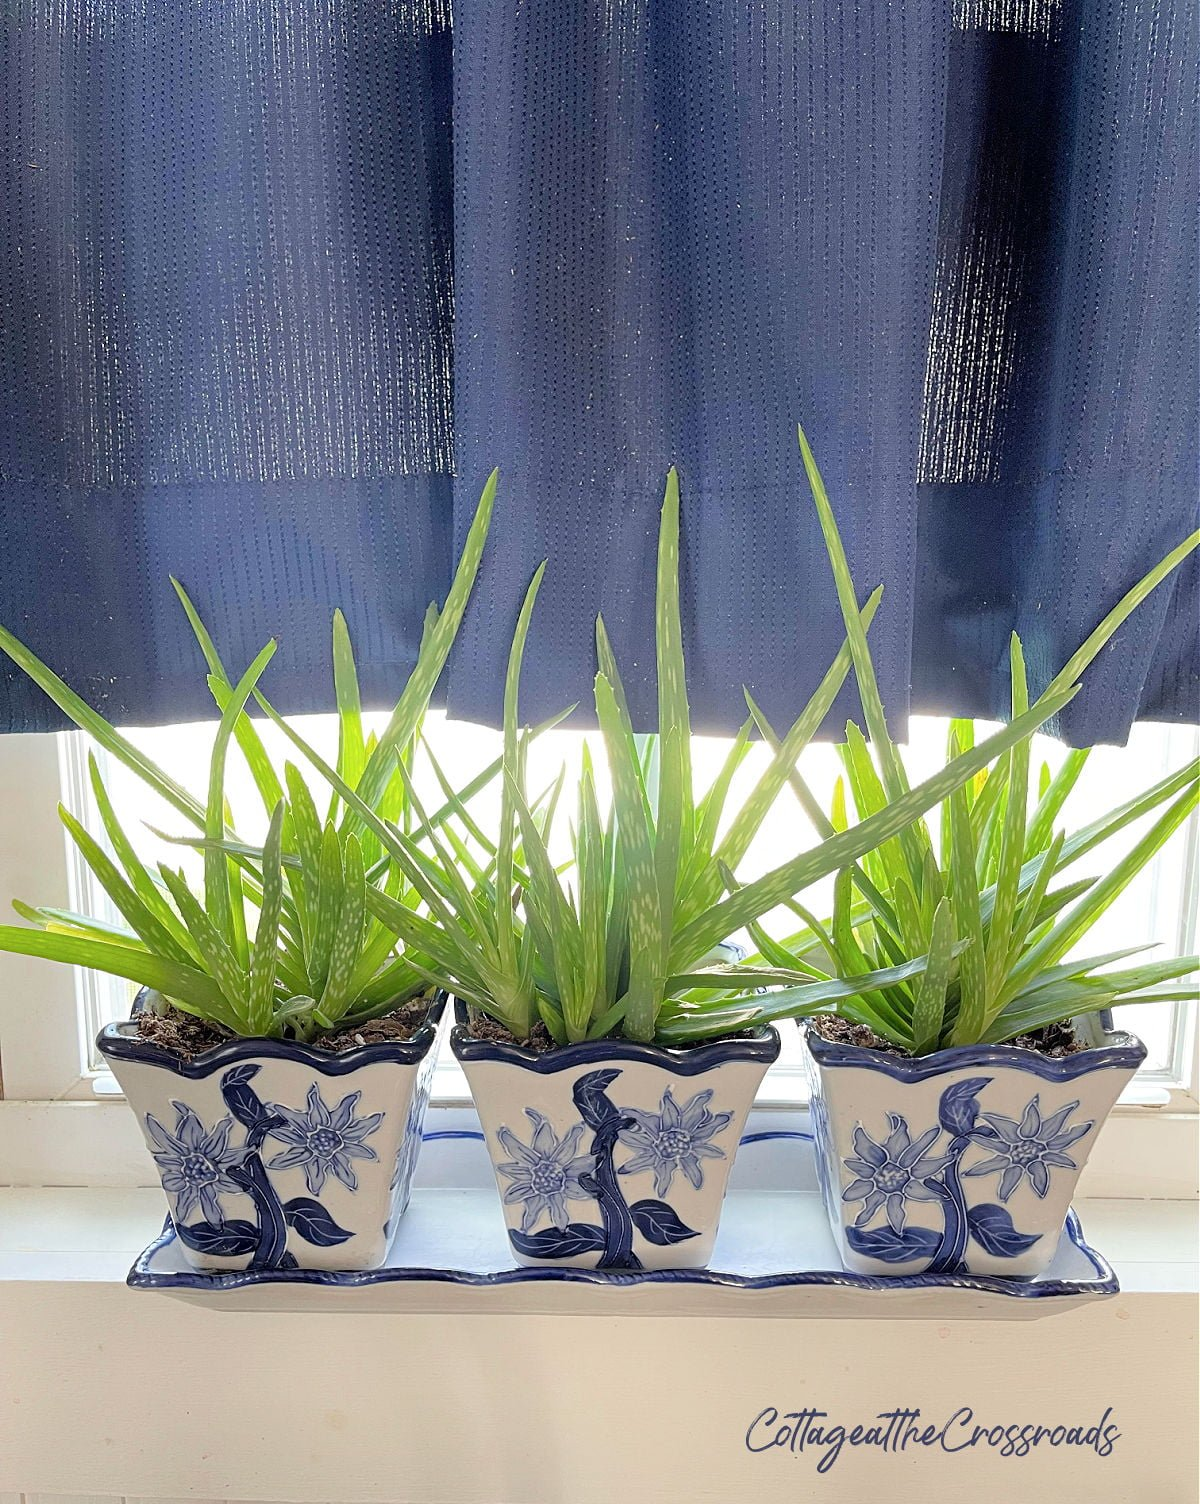 aloe plants growing in blue and white containers